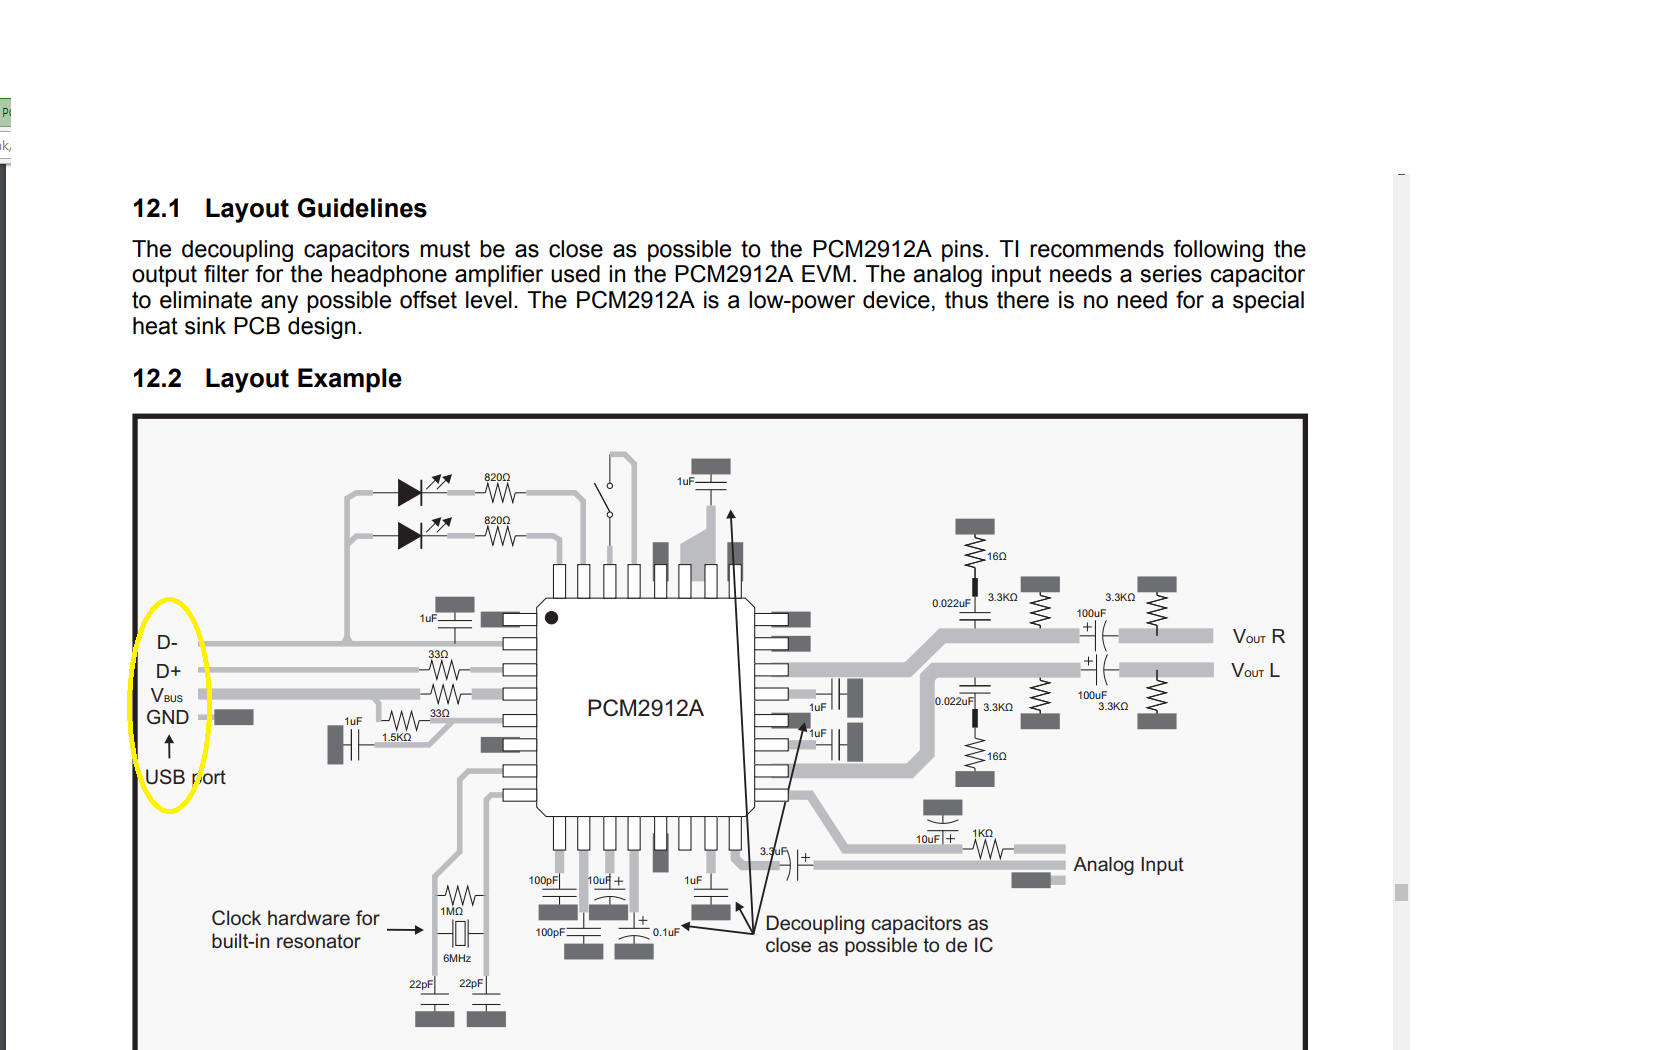 Pcm2912a Unable To Play Sounds With And Ic Also Getting Level 0 Block Diagram I Tested 4 Ics Same Issue Im Suspecting That Is There Any Possibility Receive Damaged Lot Non Functional From Ti